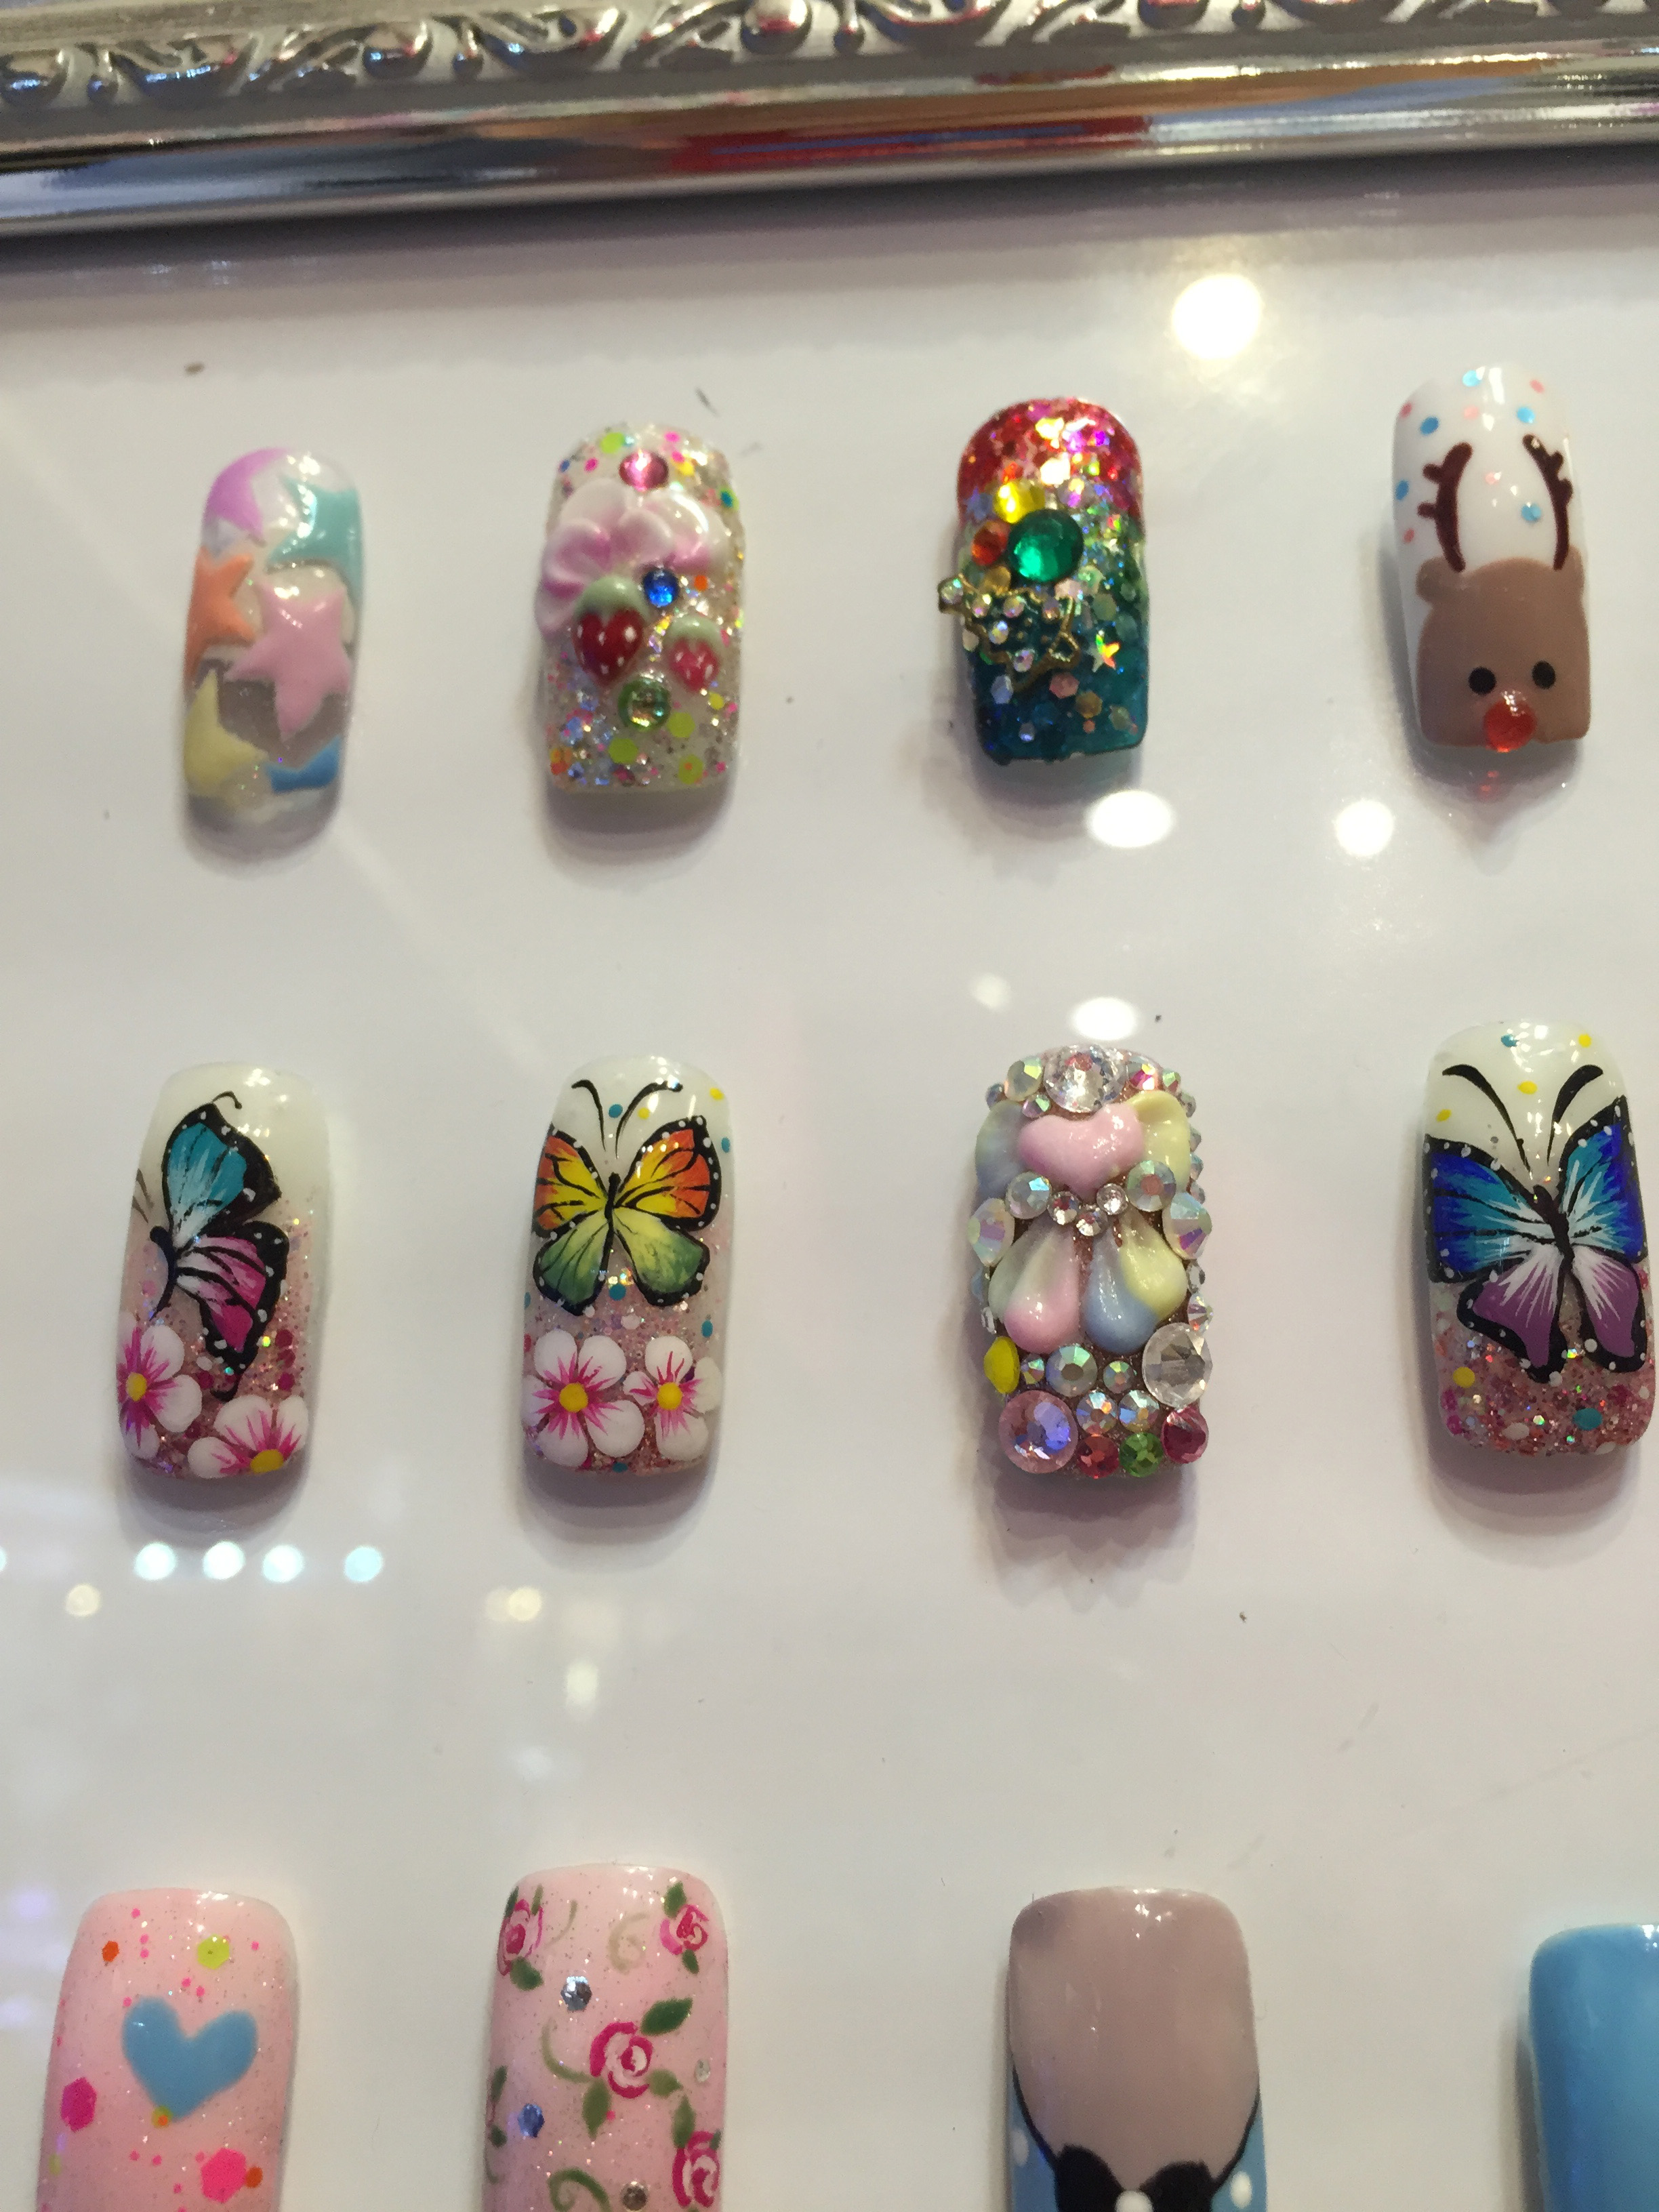 For The Best 350thb Gel Manicure In Bangkok Go Where The